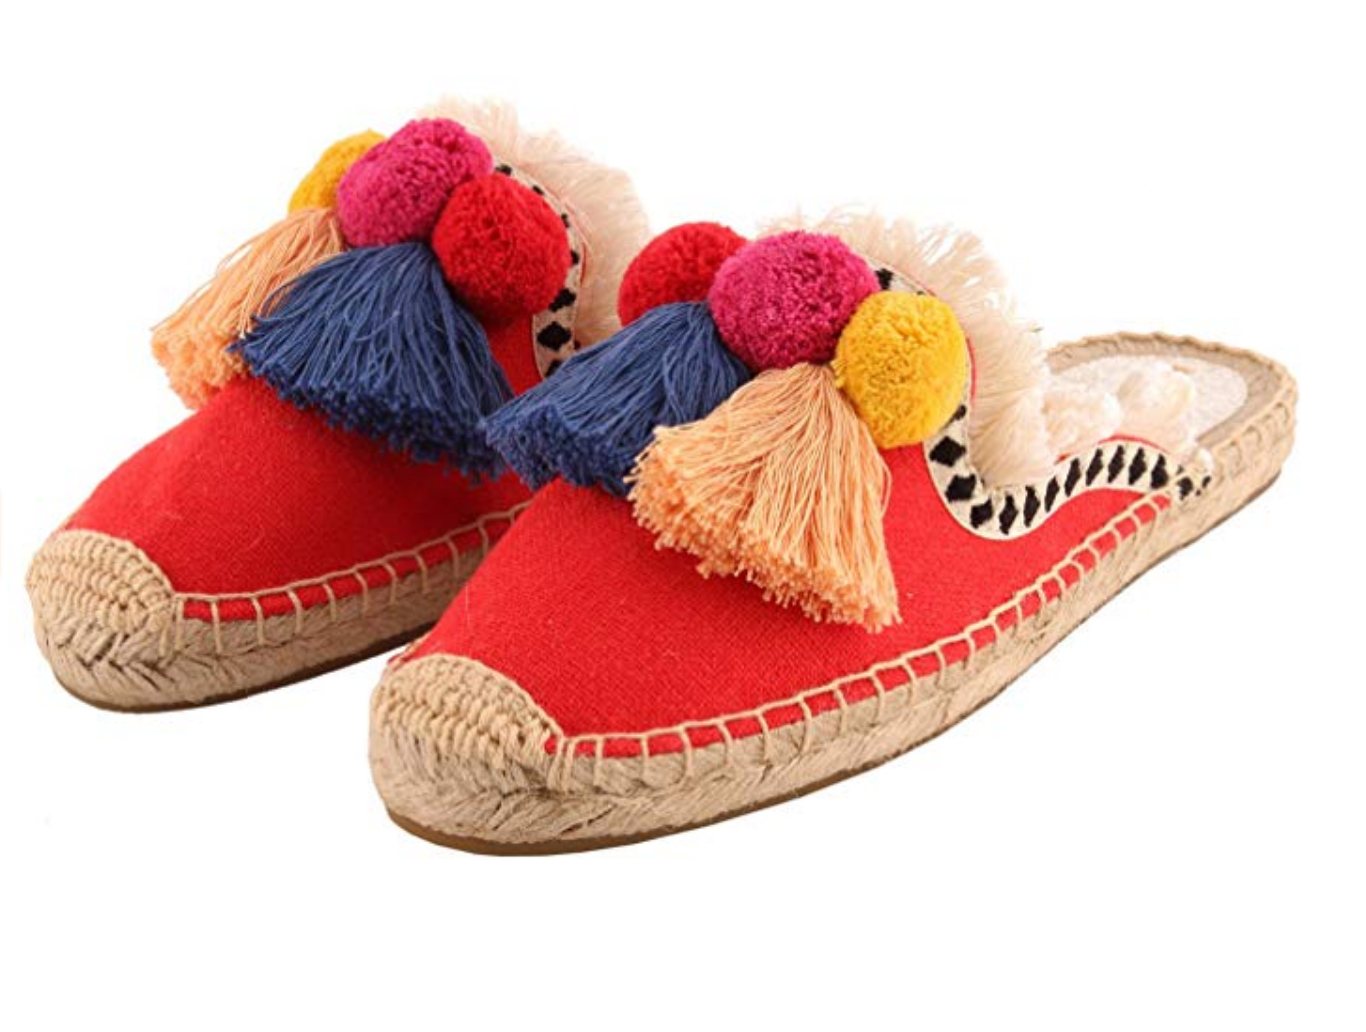 Pom Pom Shoes - These shoes were made for shuffling around little beach towns.